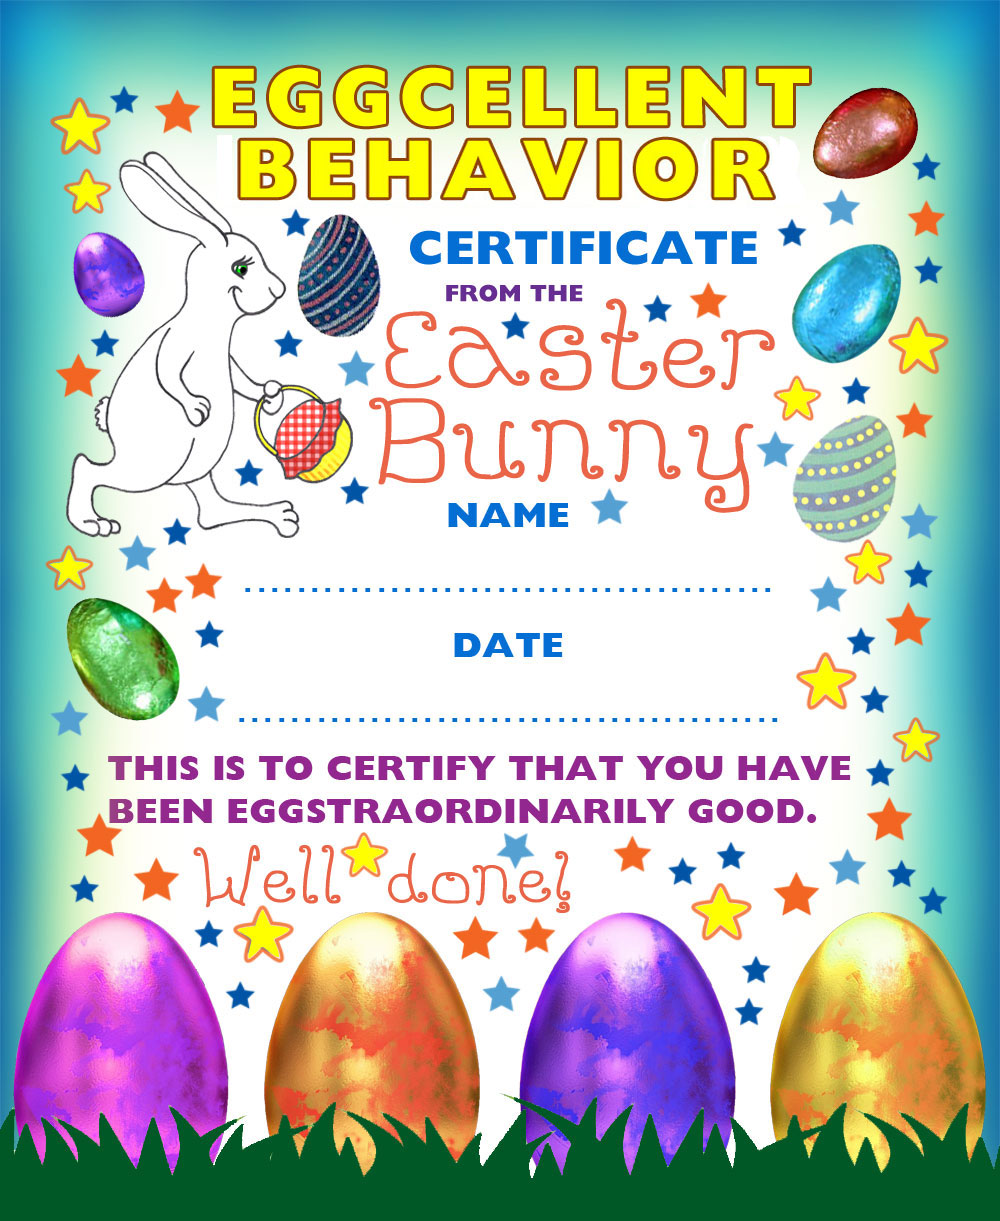 American version of our printable Easter Bunny Certificate for eggcellent behavior - contains US spelling